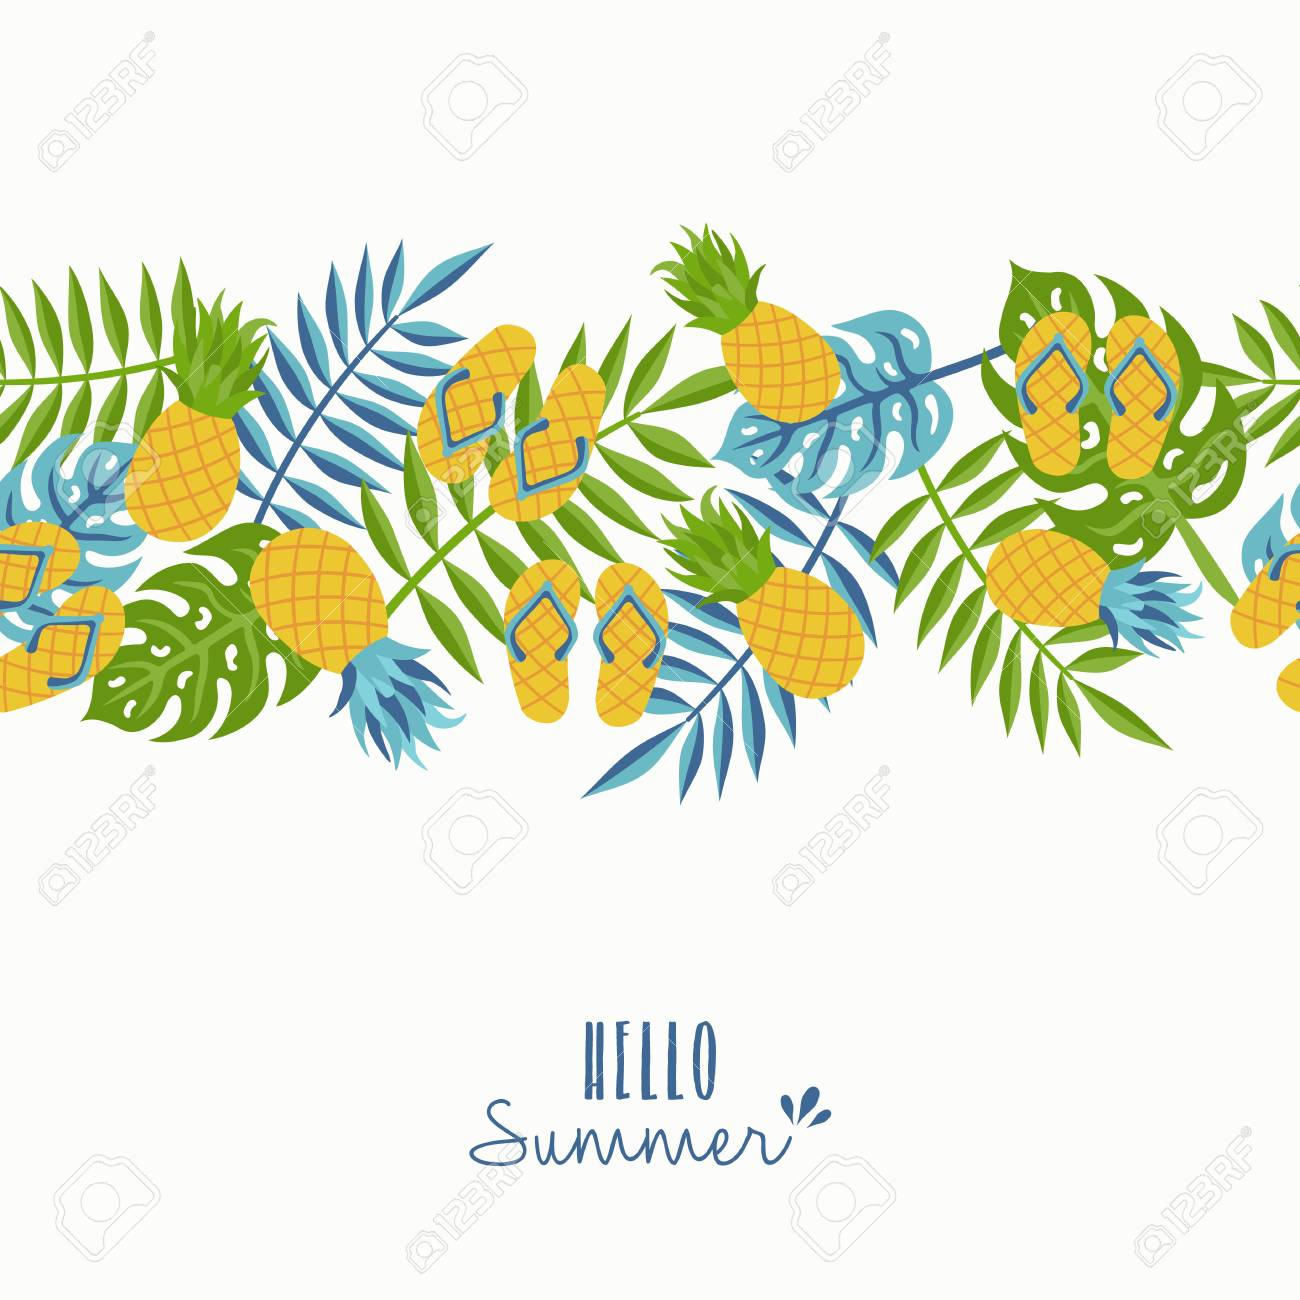 Happy Summer Greeting Card Design With Tropical Seamless Pattern And  Typography Quote. Stock Vector